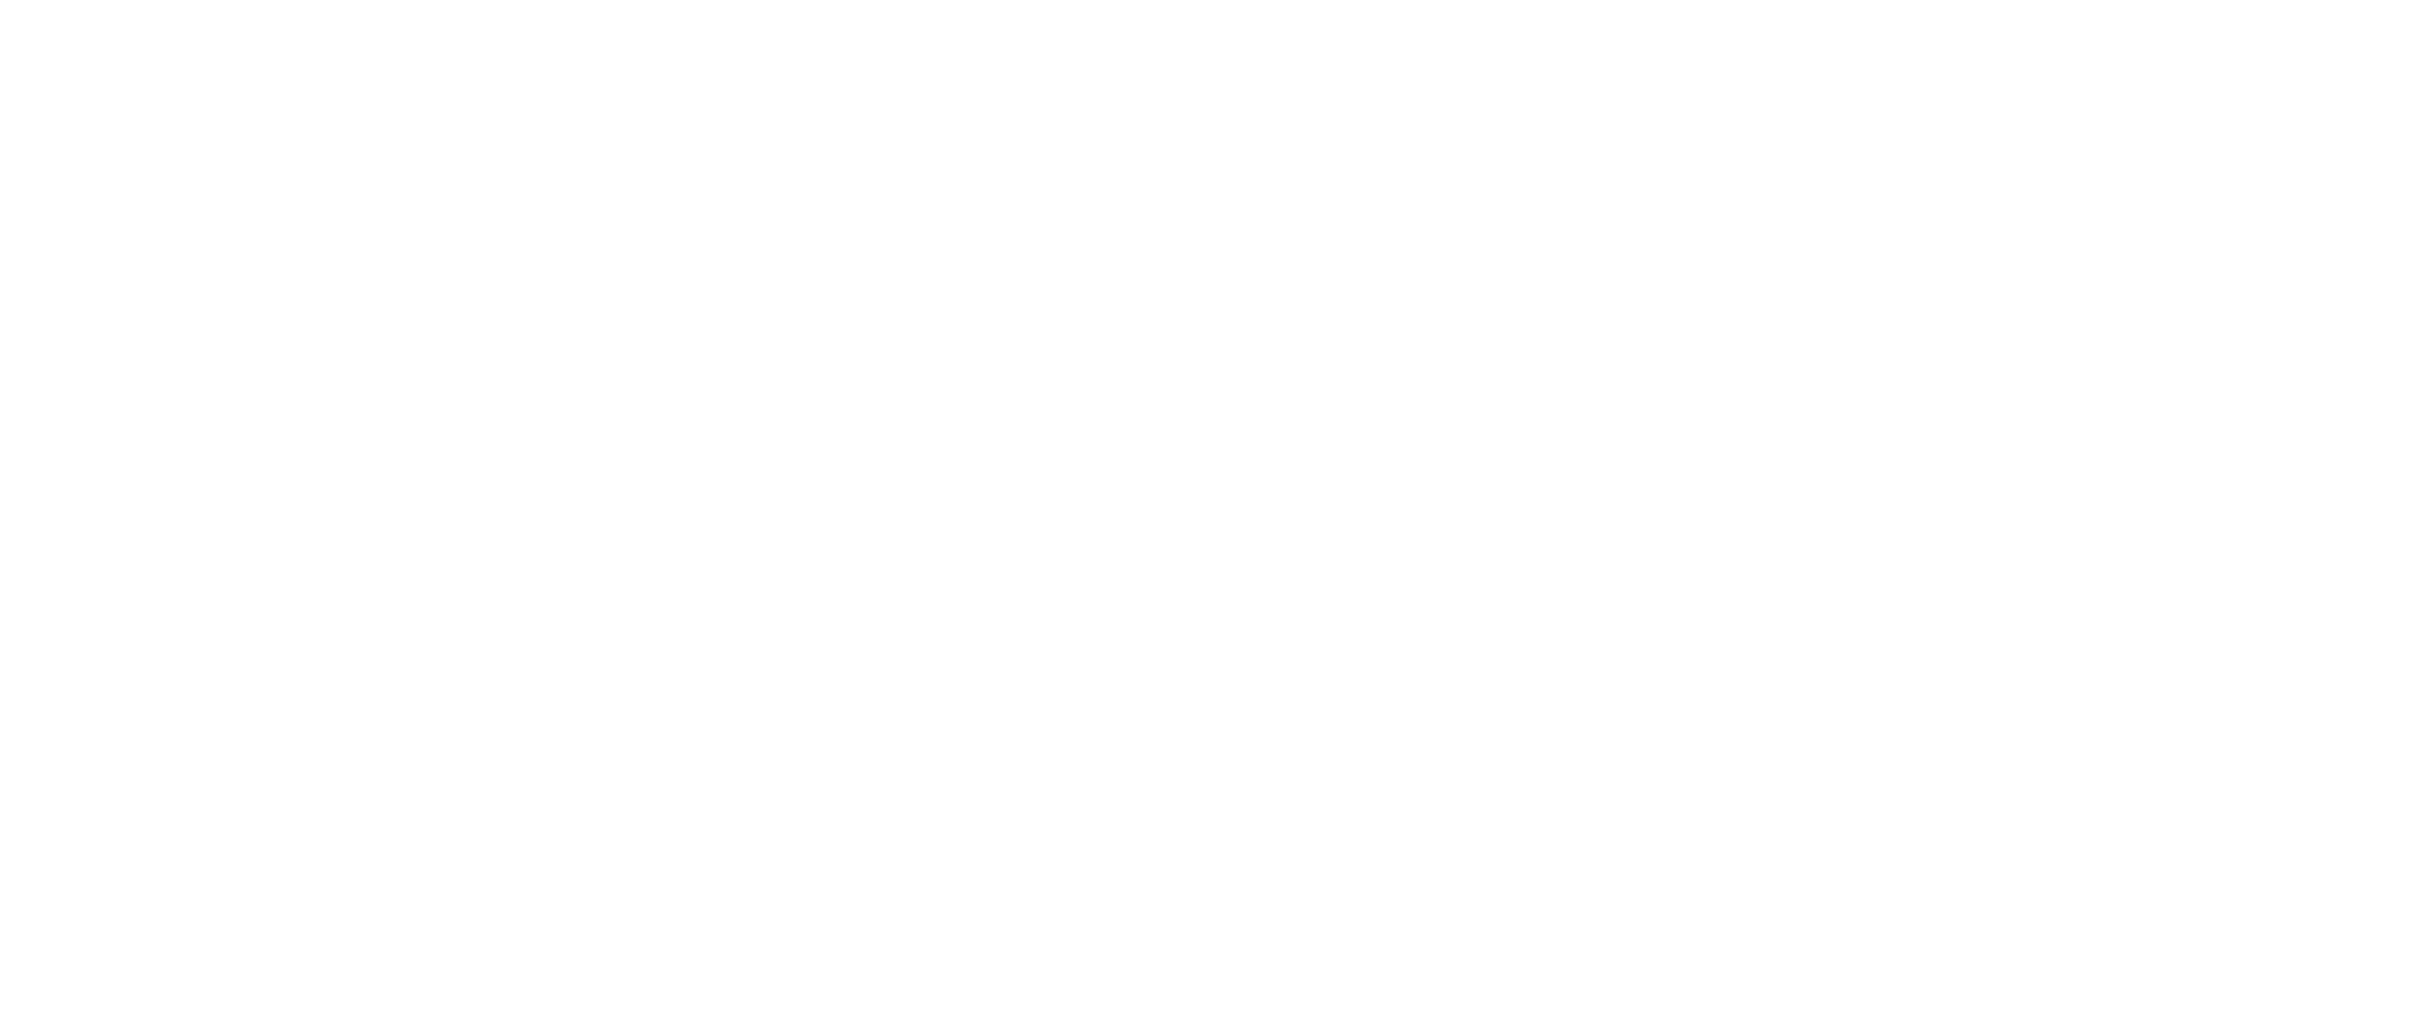 Supply Chain Management, LLC